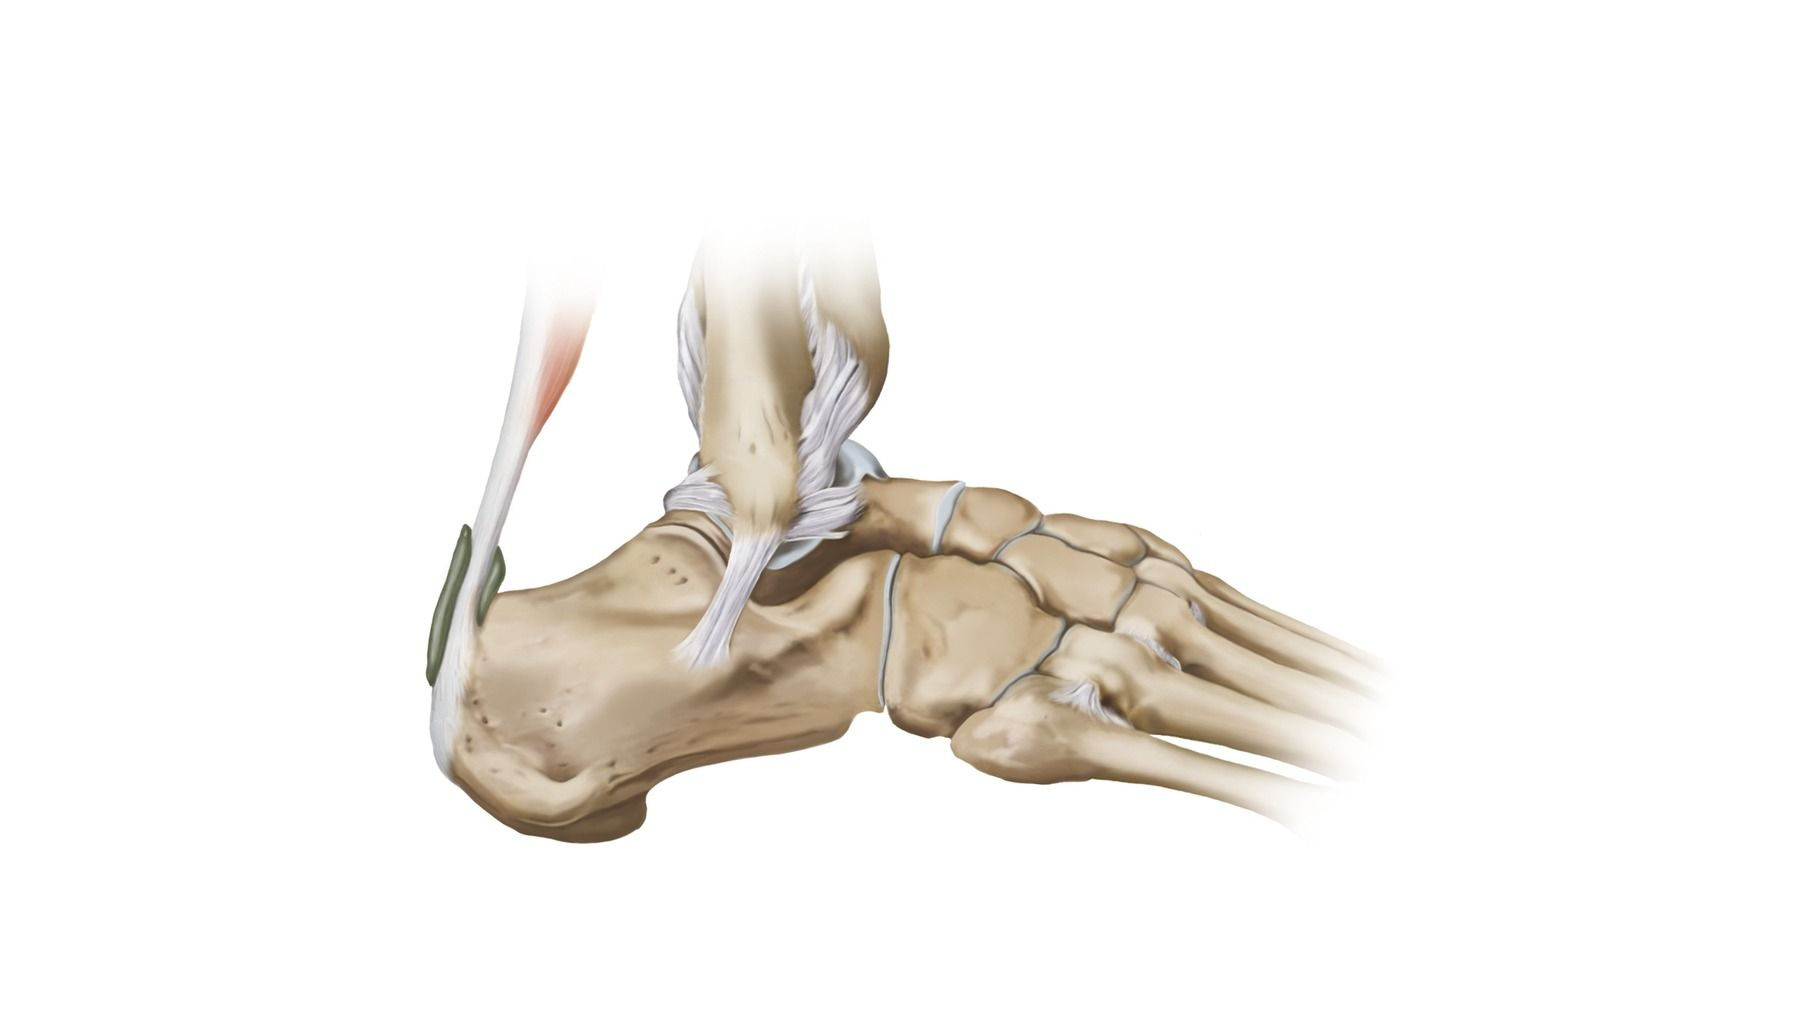 Ankle Joints | www.topsimages.com